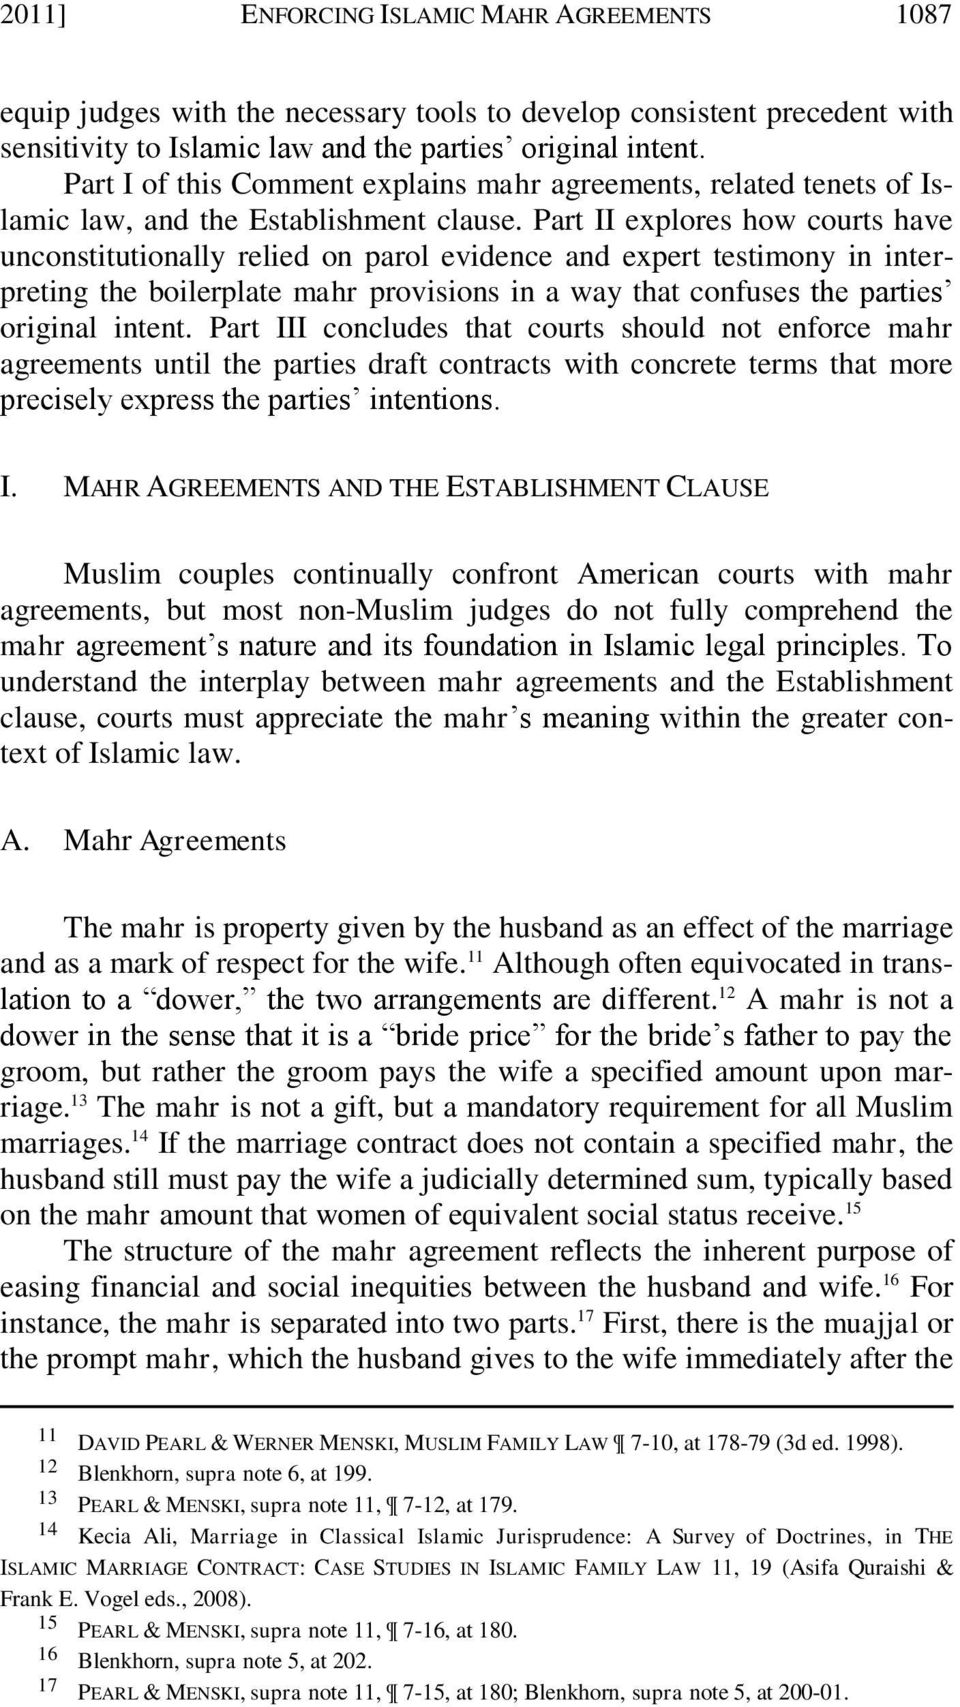 Enforcing Islamic Mahr Agreements The American Judge S